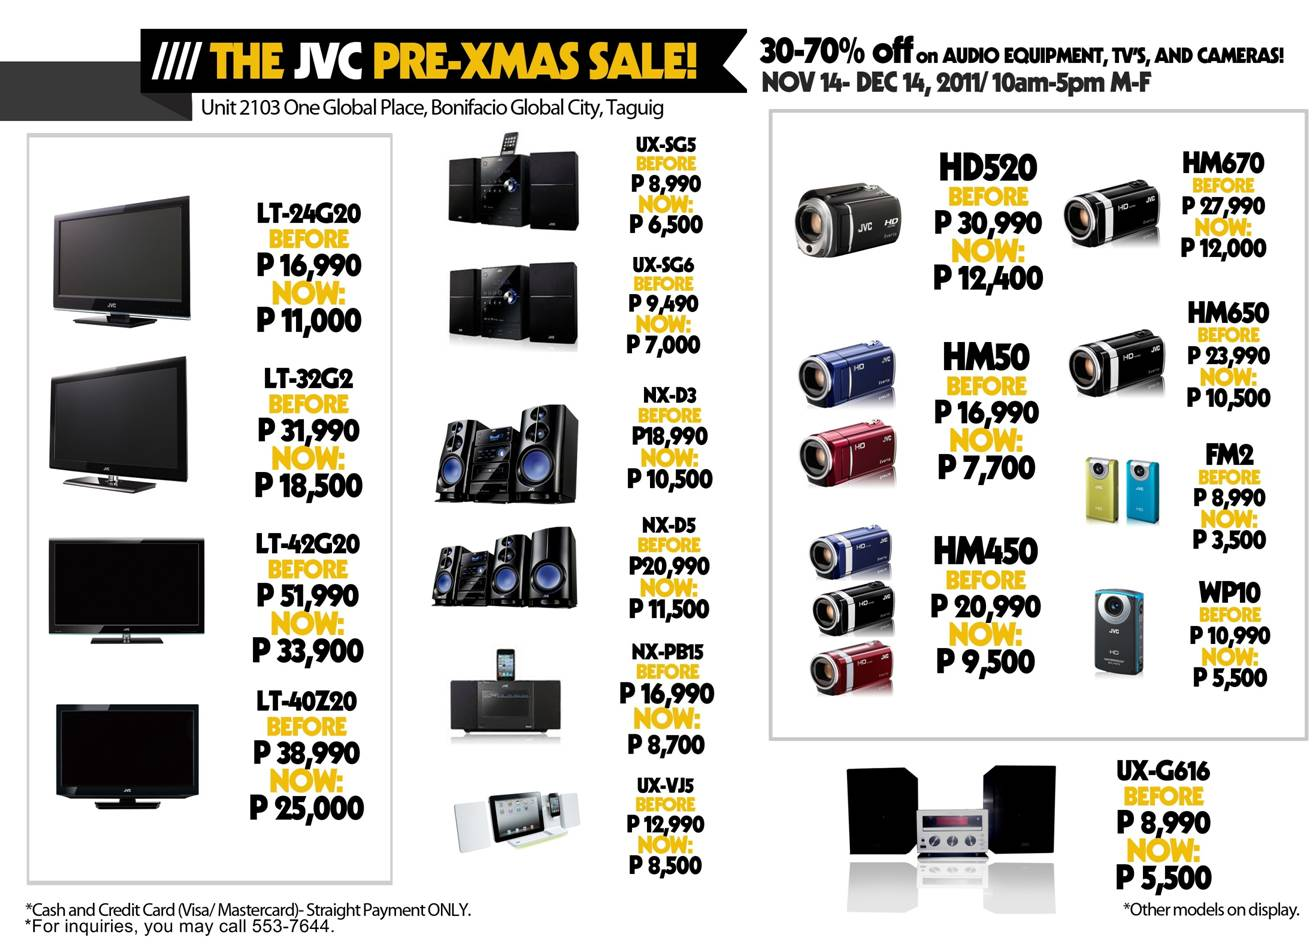 Click the image above to get a larger view of the price list.